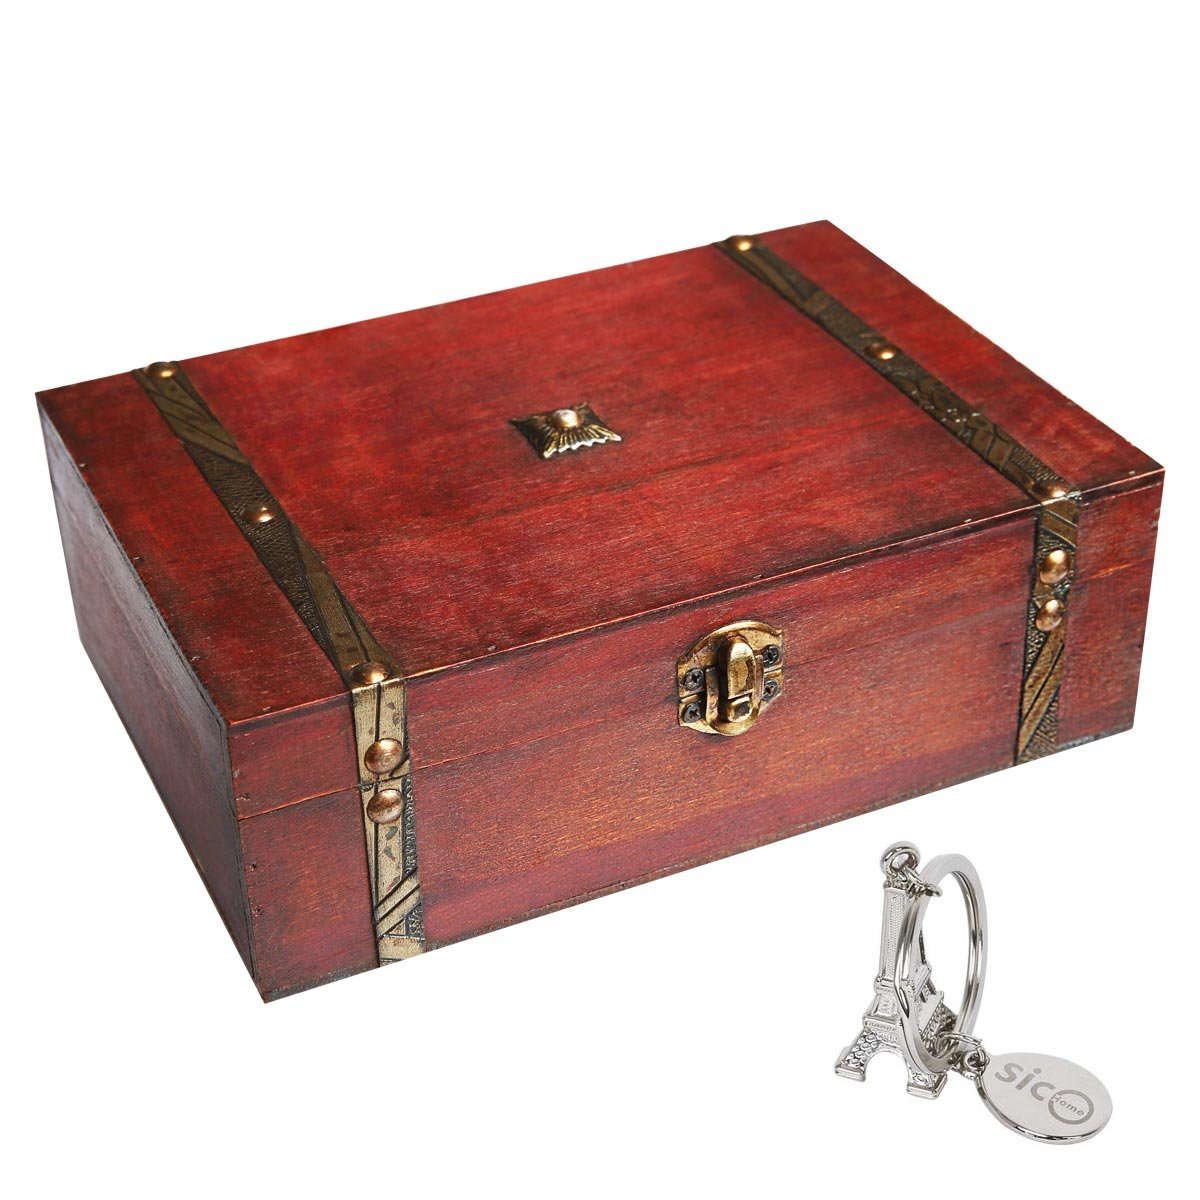 SICOHOME Treasure Box 9.0inch Pirate Small Trunk Box for Jewelry Storage,Cards Collection,Gifts and Home Decoration